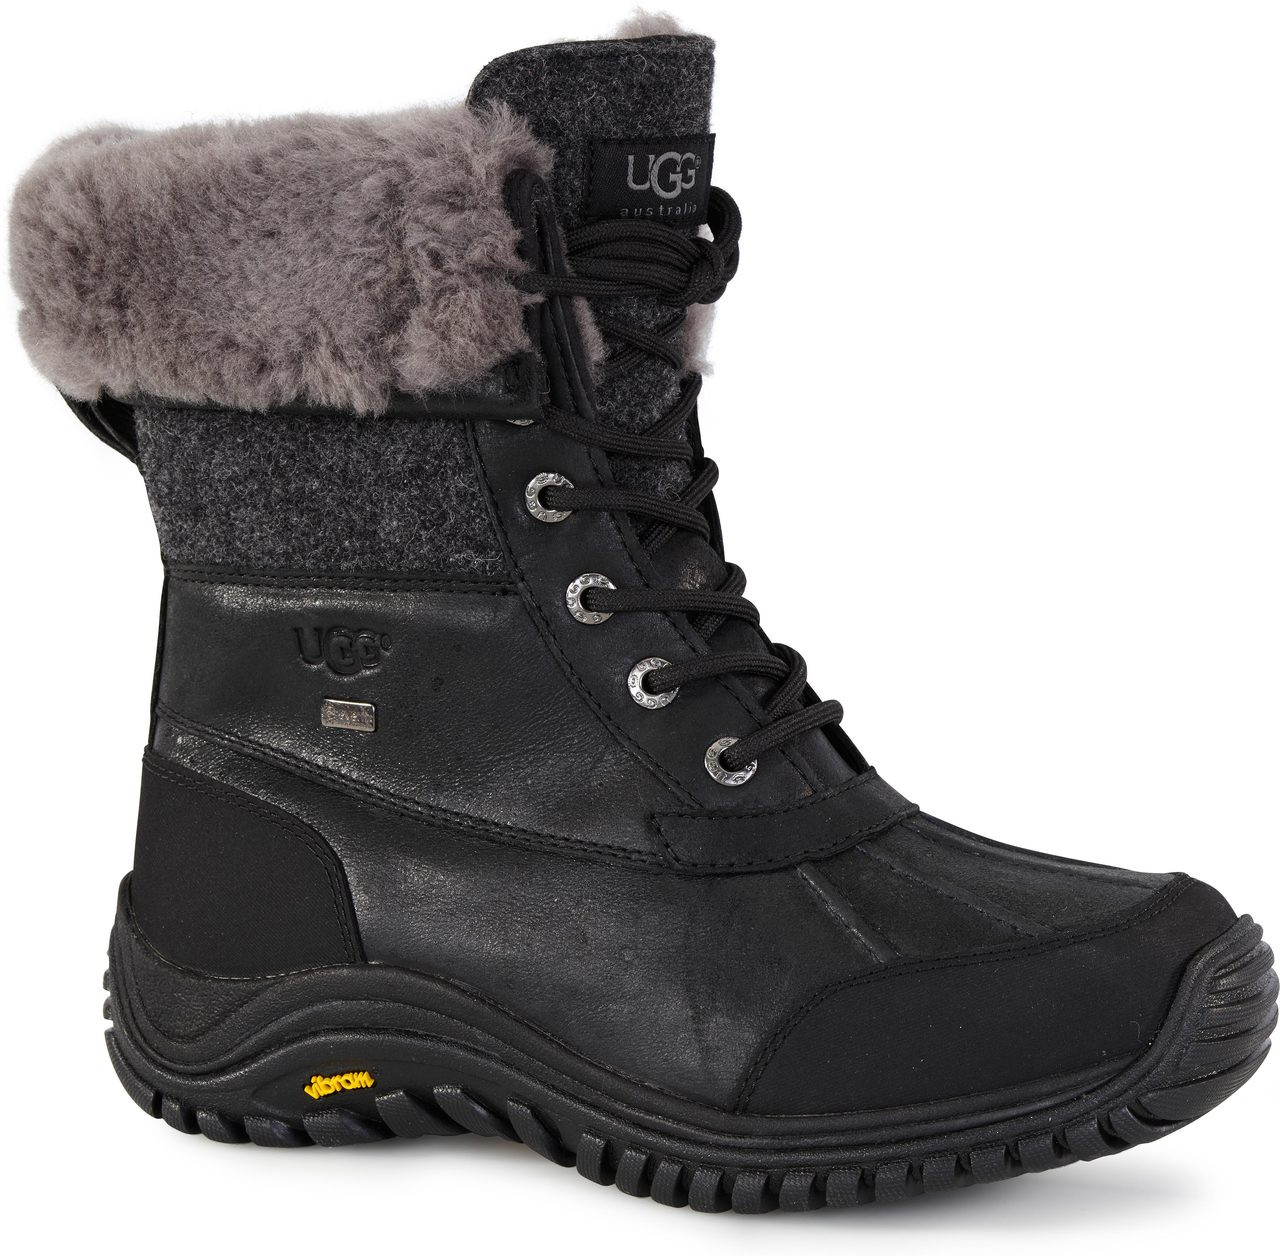 ... UGG Women's Adirondack Boot II. Black